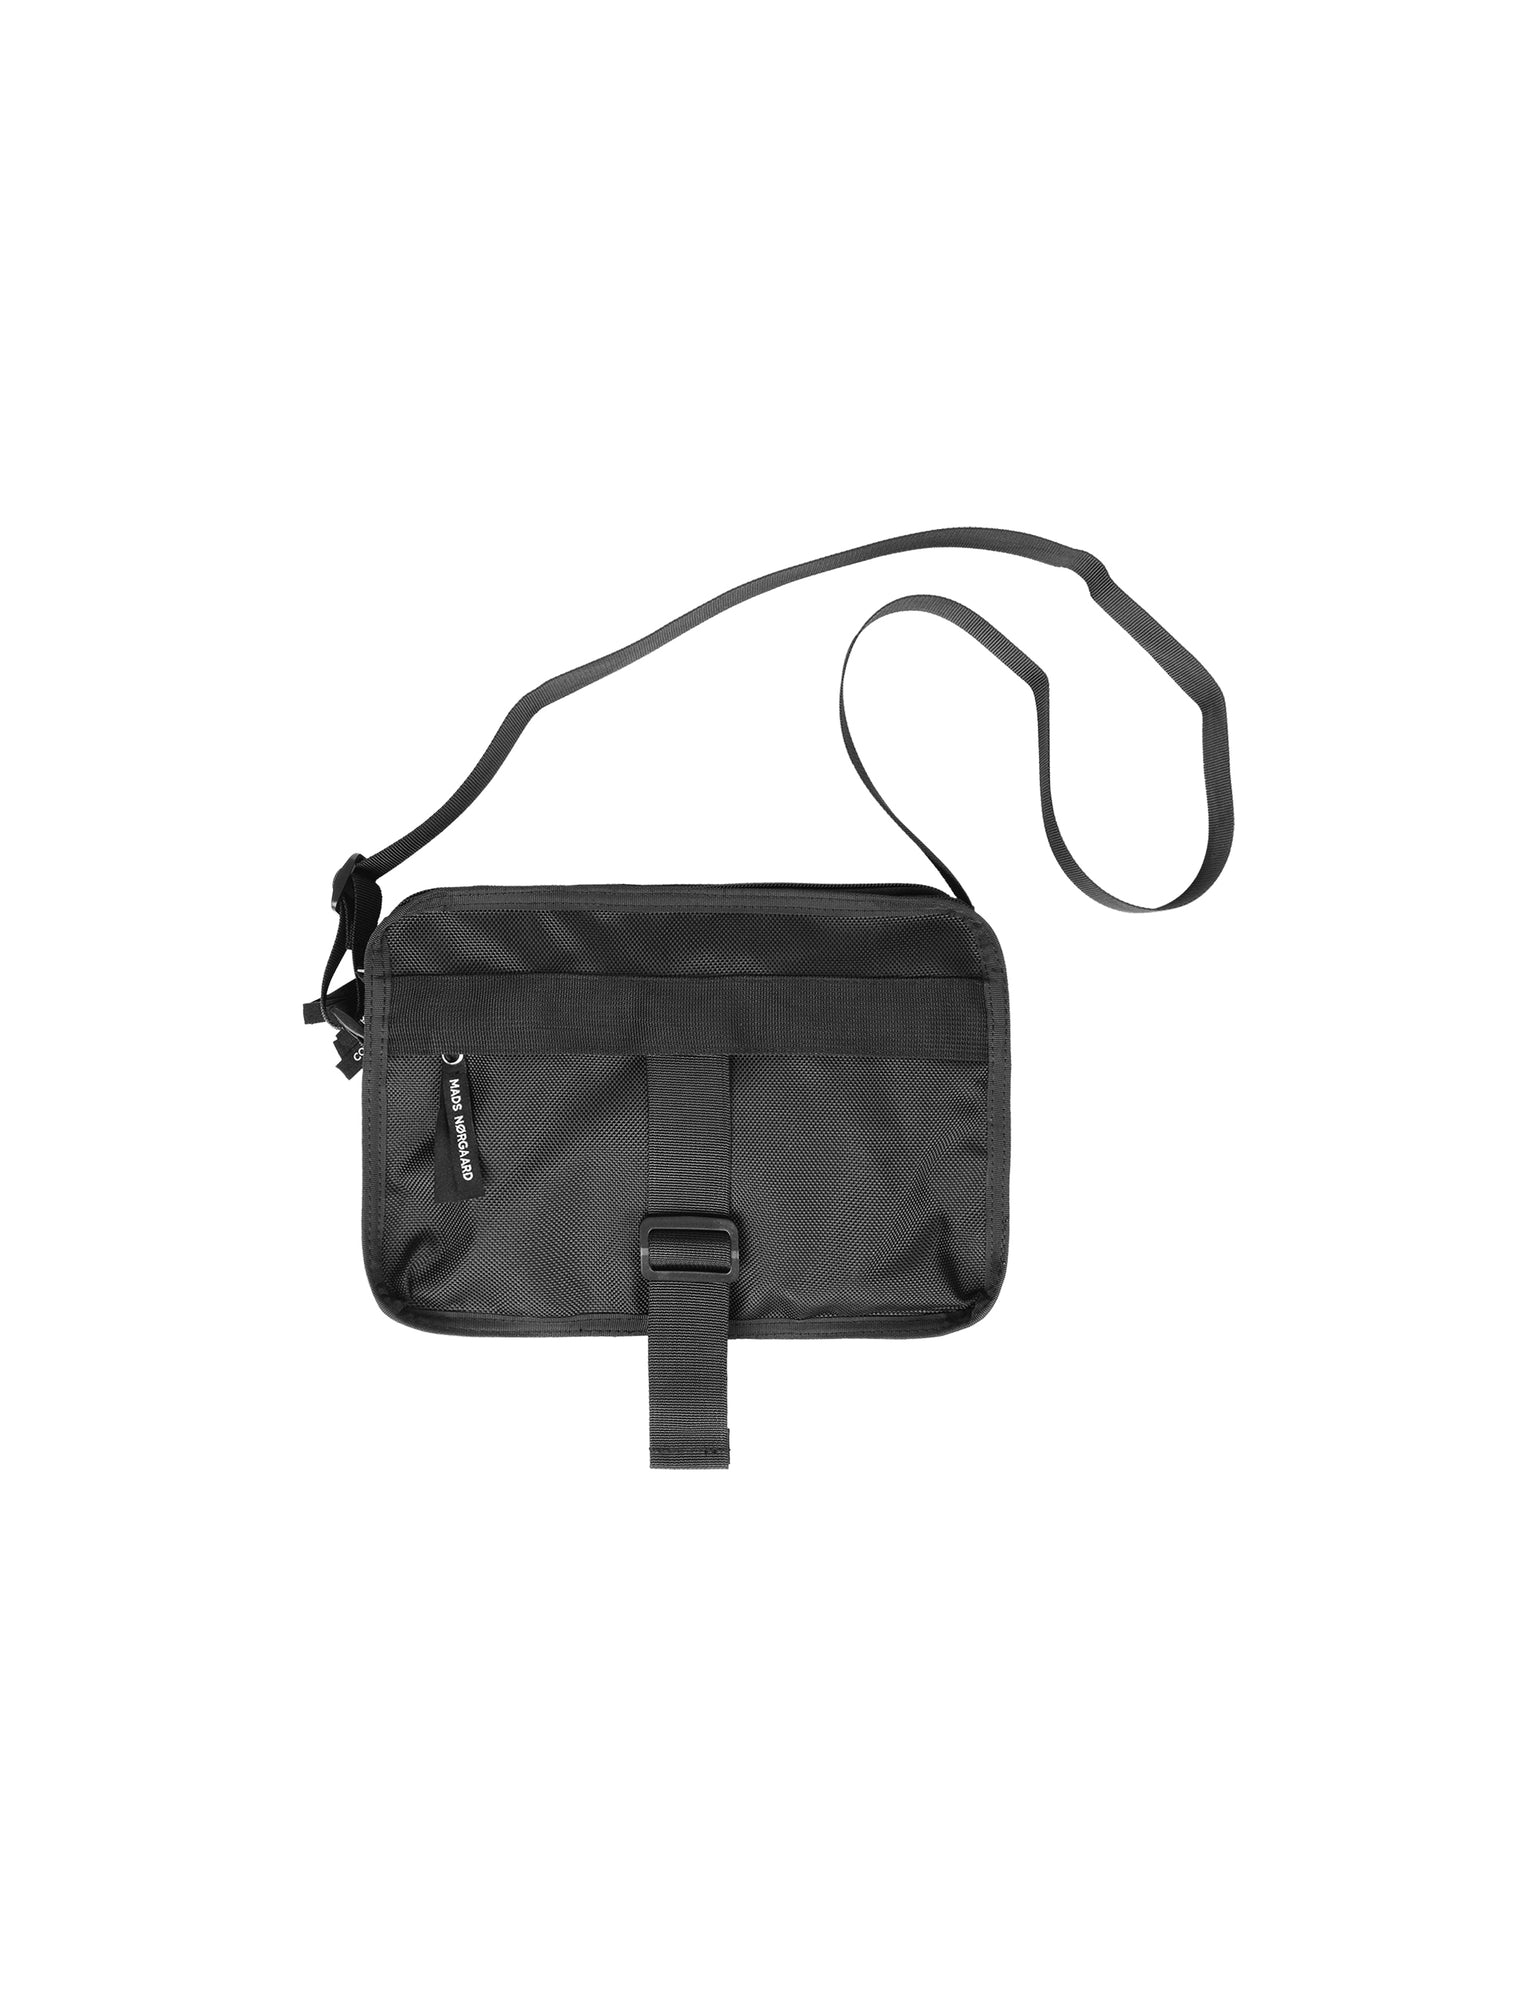 Travail Small Bag, Black